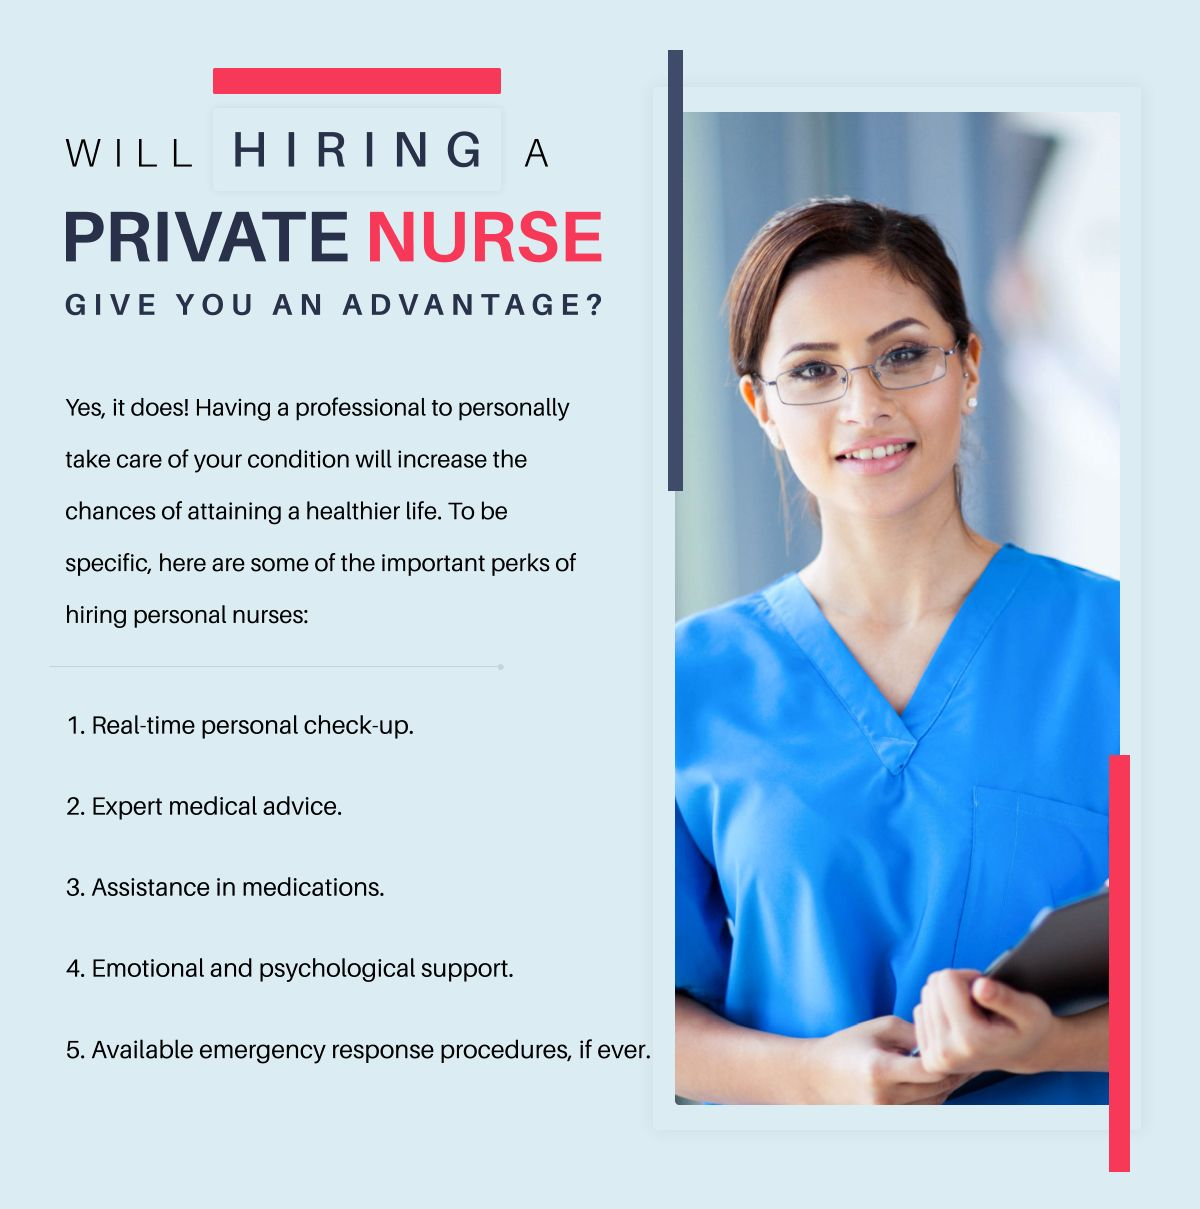 Will Hiring A Private Nurse Give You An Advantage